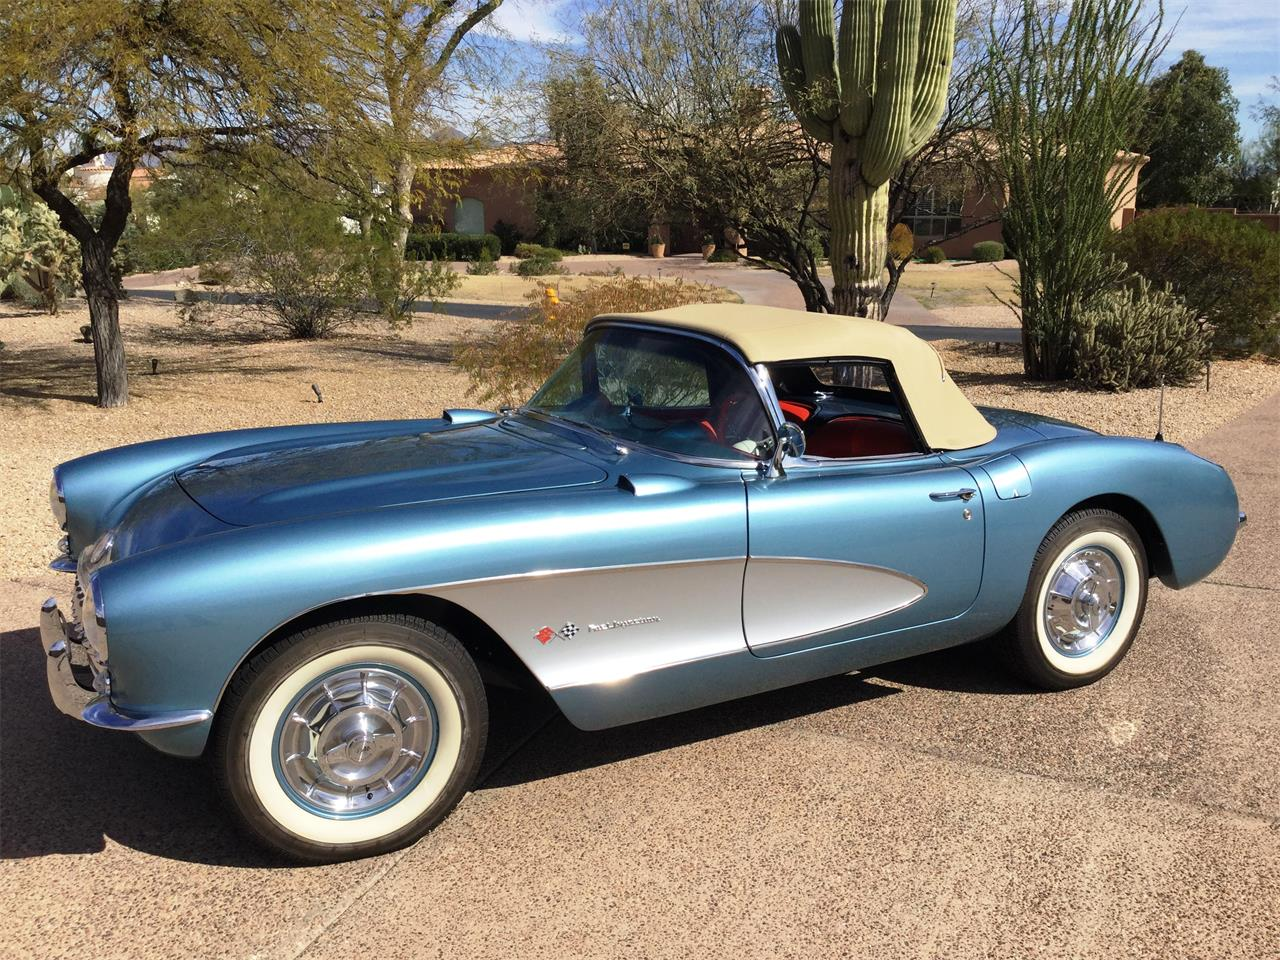 Large Picture of 1957 Chevrolet Corvette located in Arizona - $118,000.00 Offered by a Private Seller - L7W8